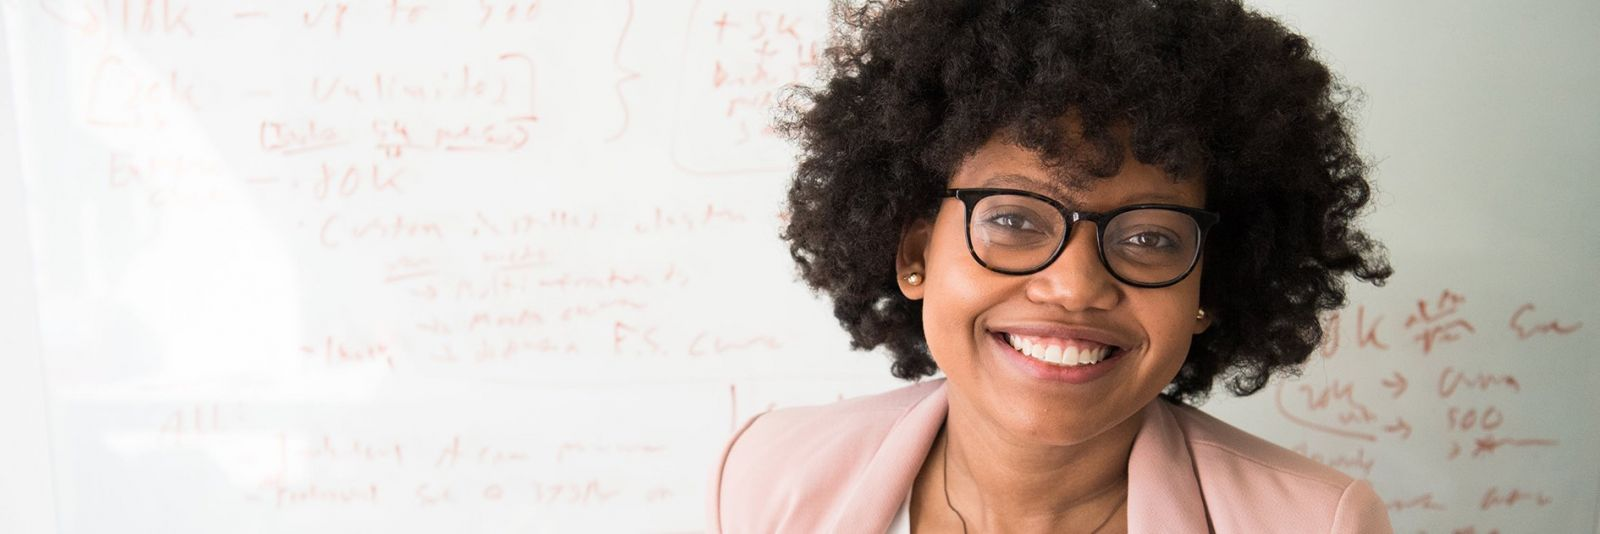 Teacher with glasses smiling in front of a white board